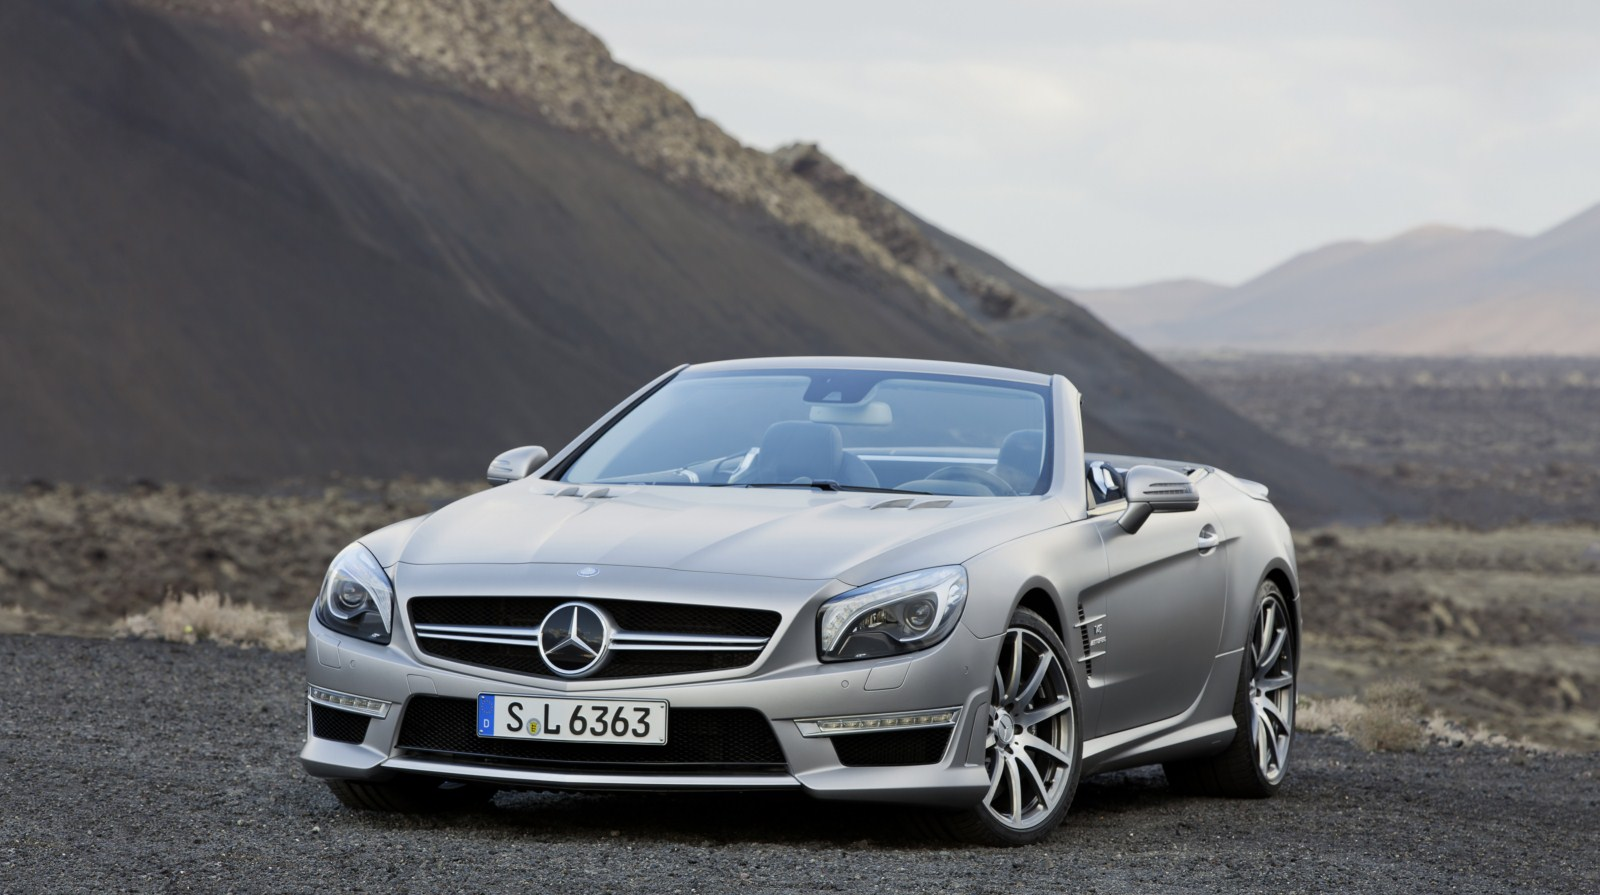 2012 mercedes benz sl63 amg convertible official garage car for Mercedes benz sl coupe